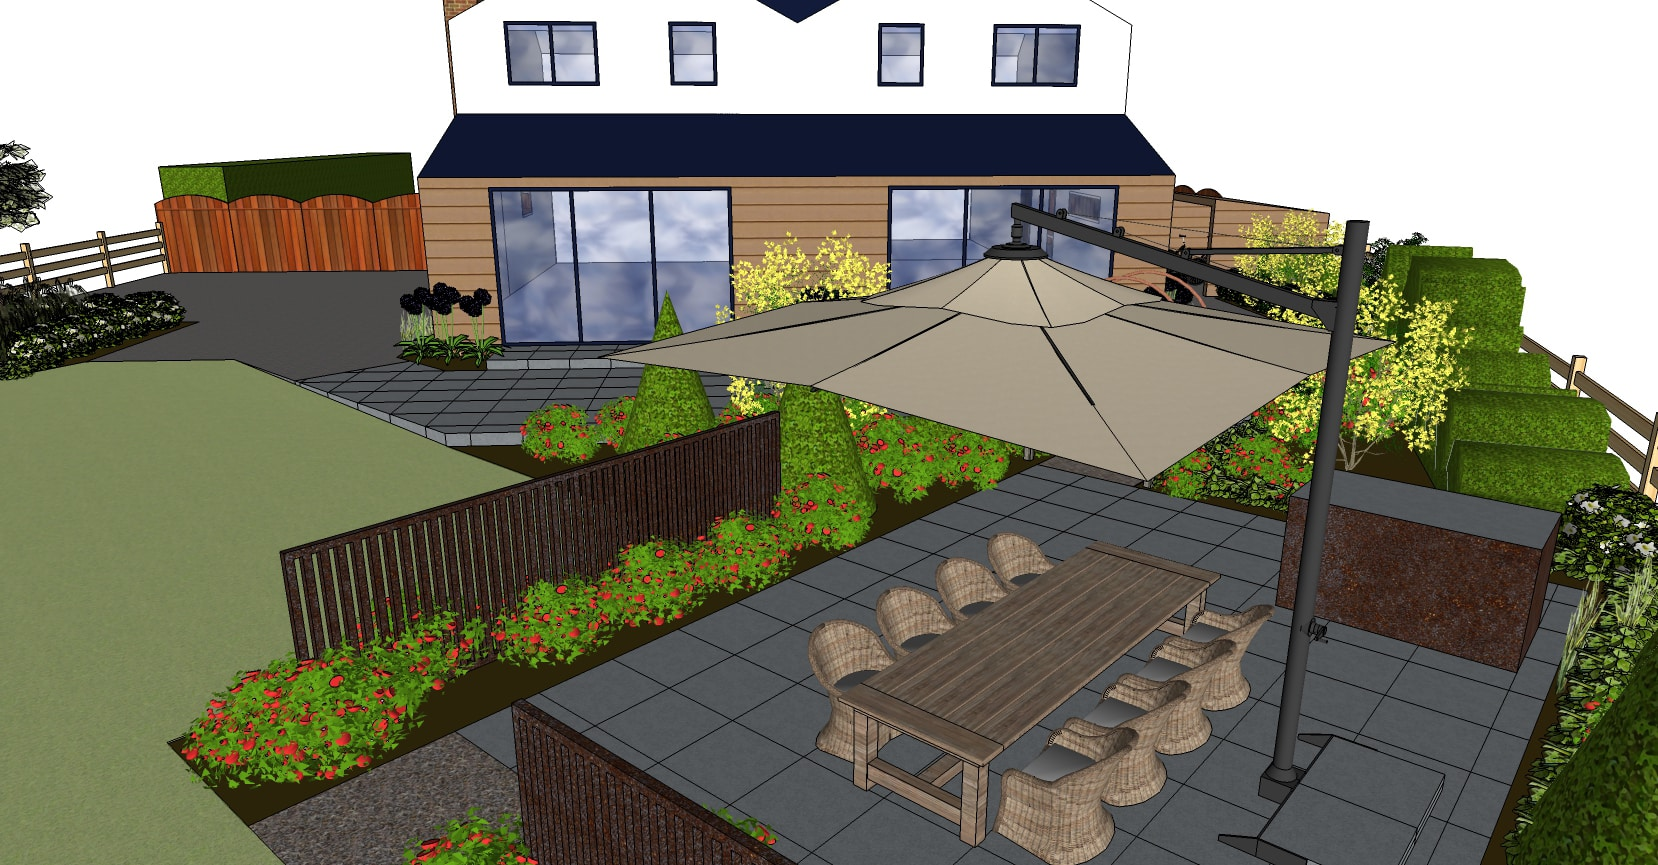 3d garden design plan for outdoor kitchen and eating area